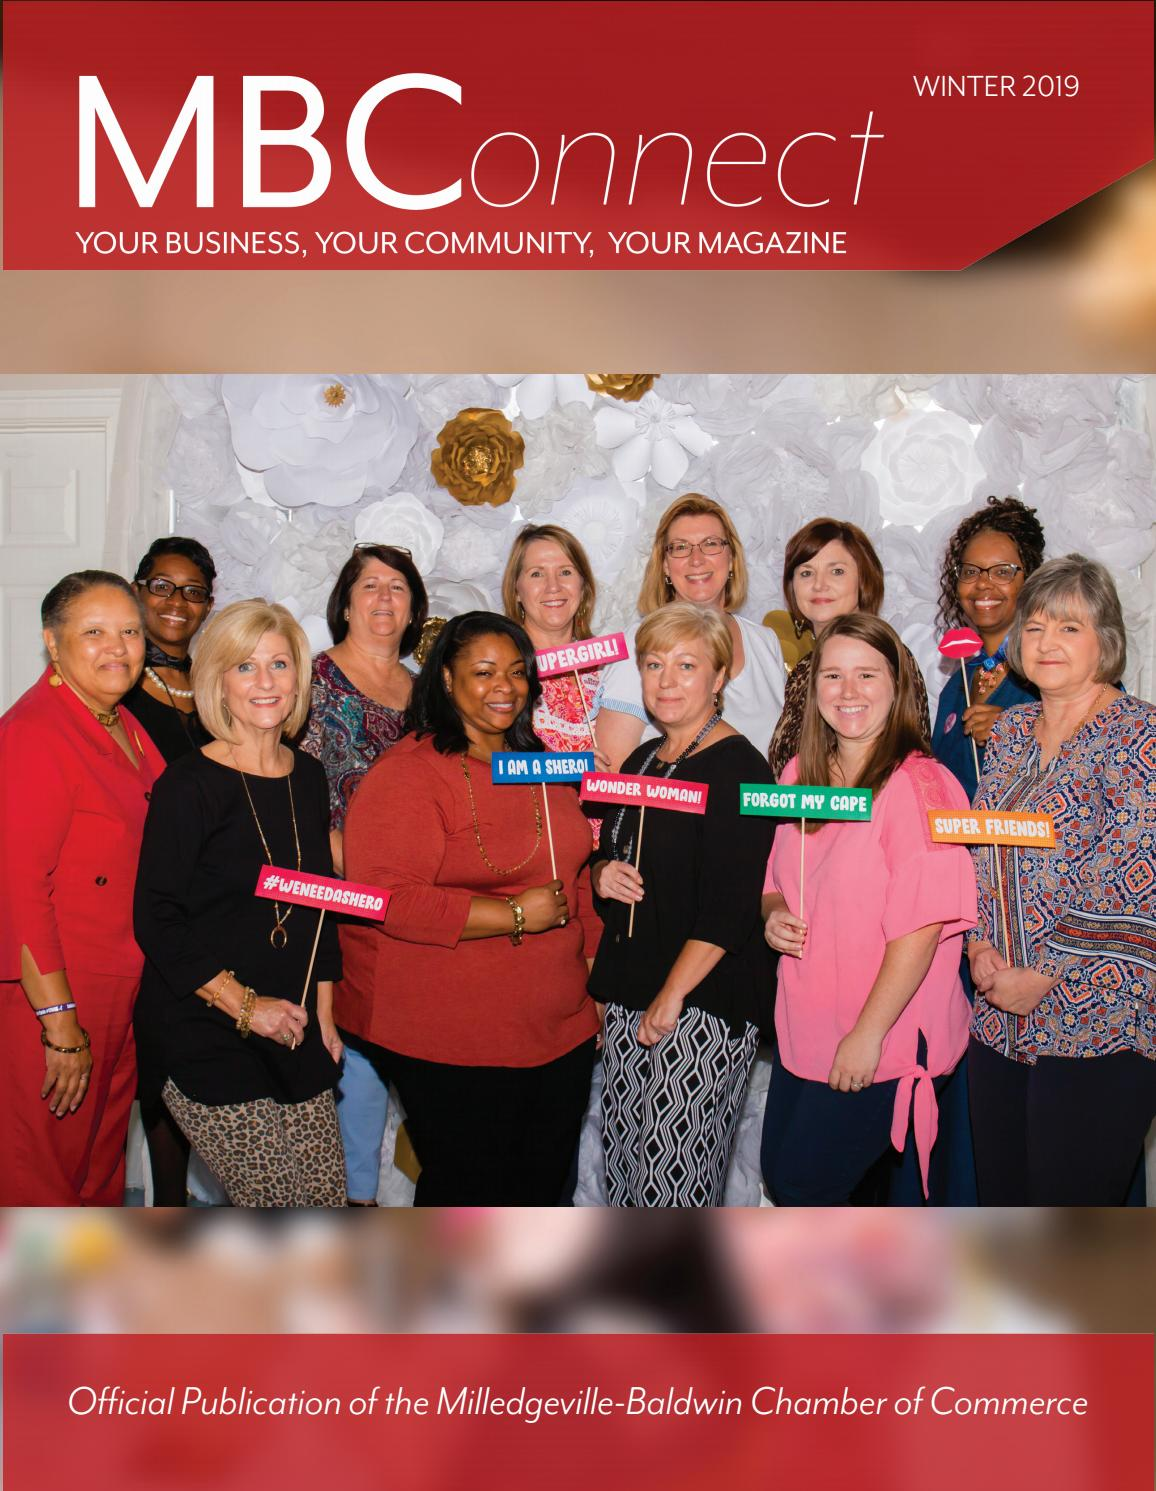 Mbconnect Winter 2019 By Milledgeville Baldwin County Chamber Of Commerce Issuu